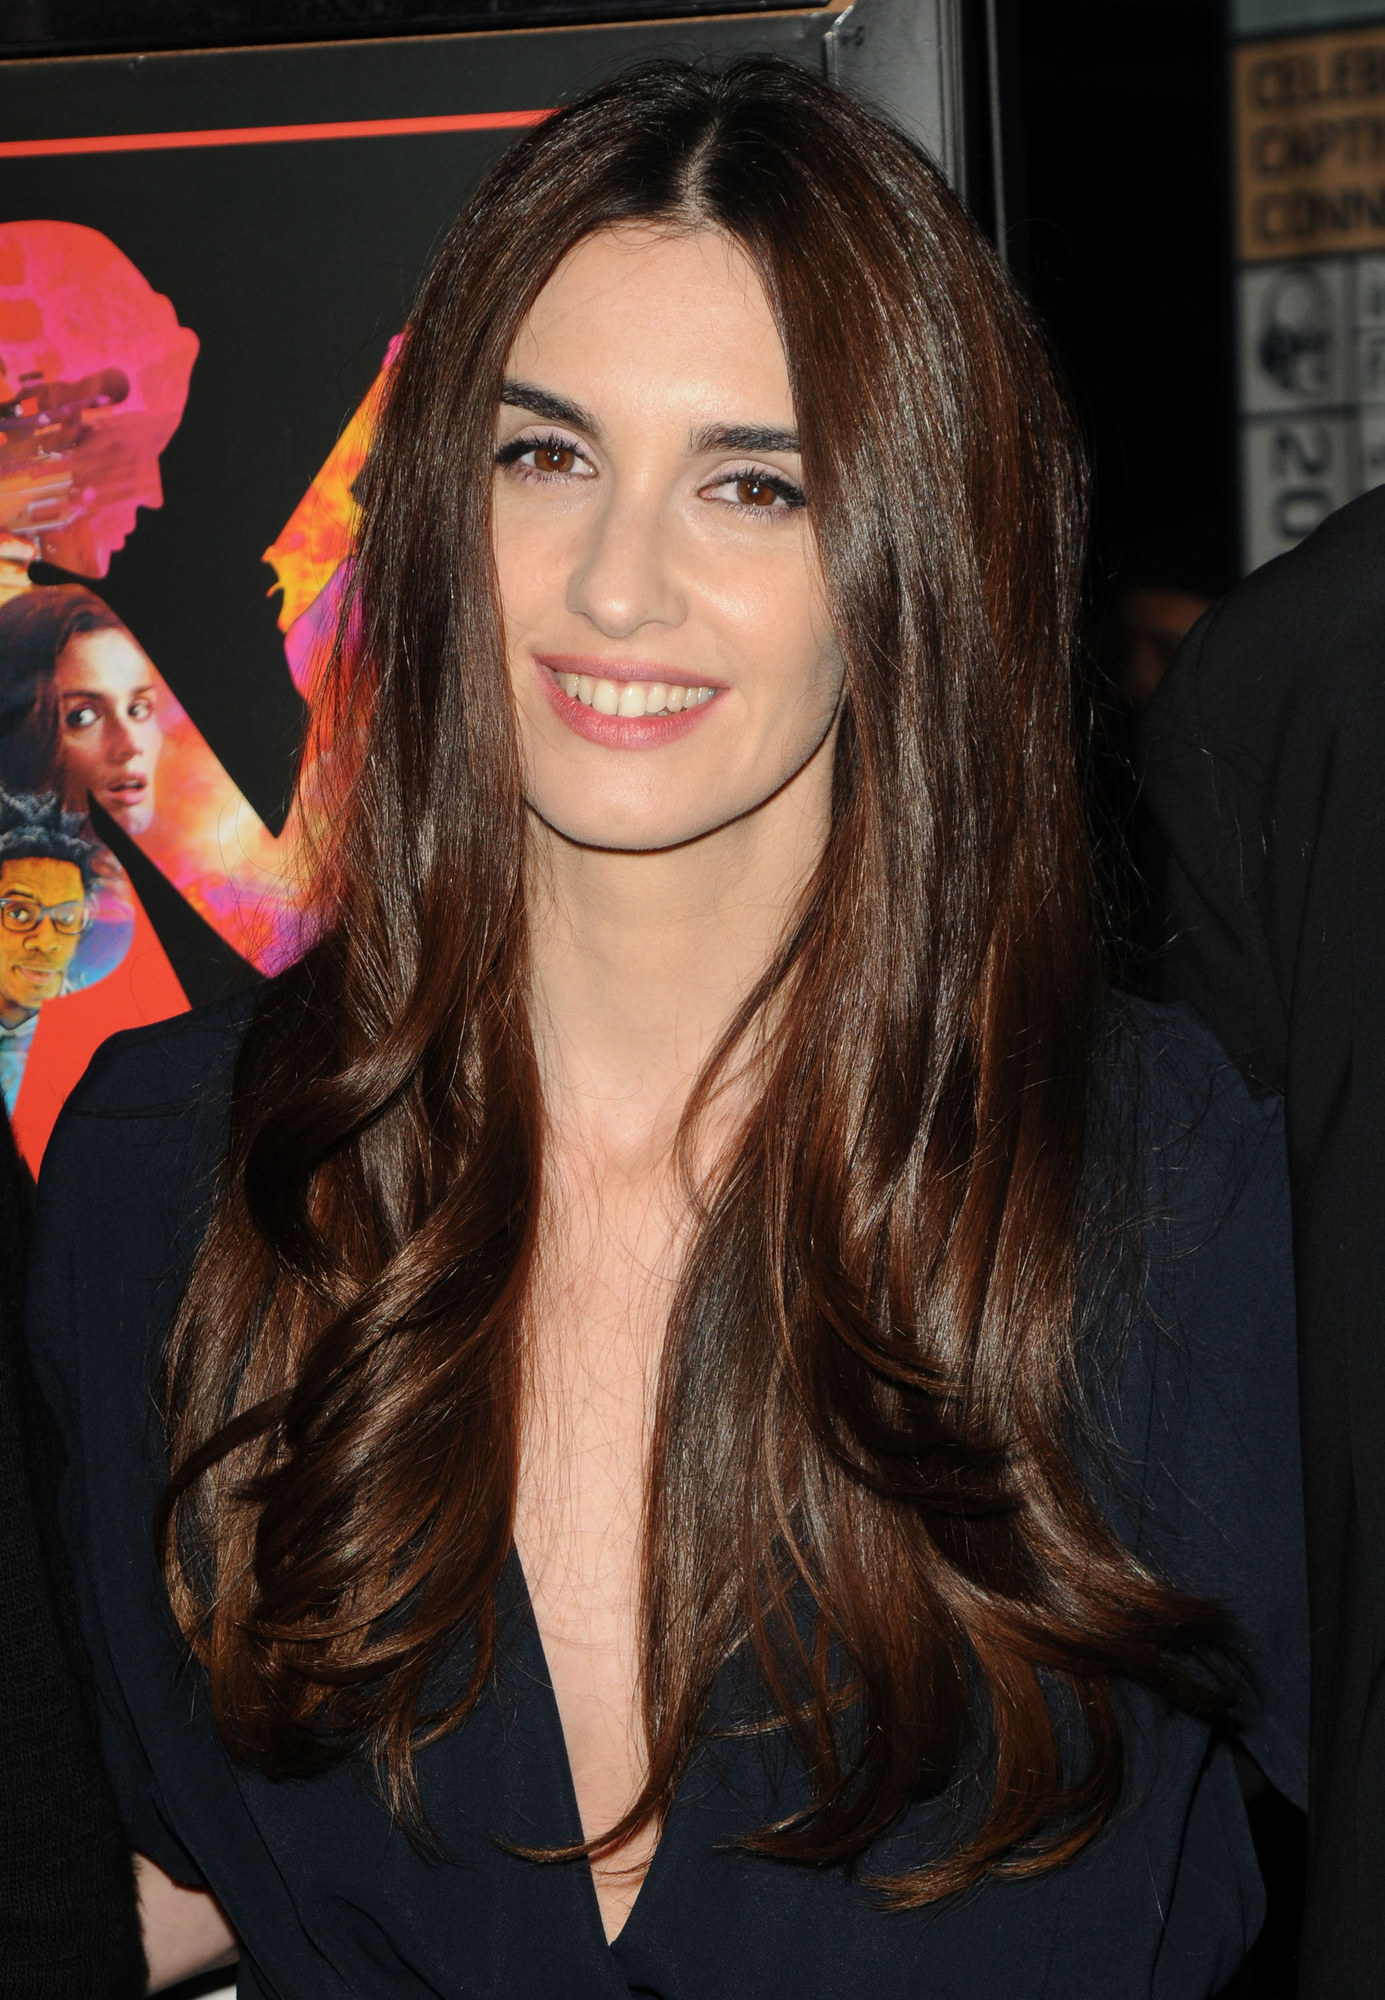 Only High Quality Pics And Photos Of Paz Vega